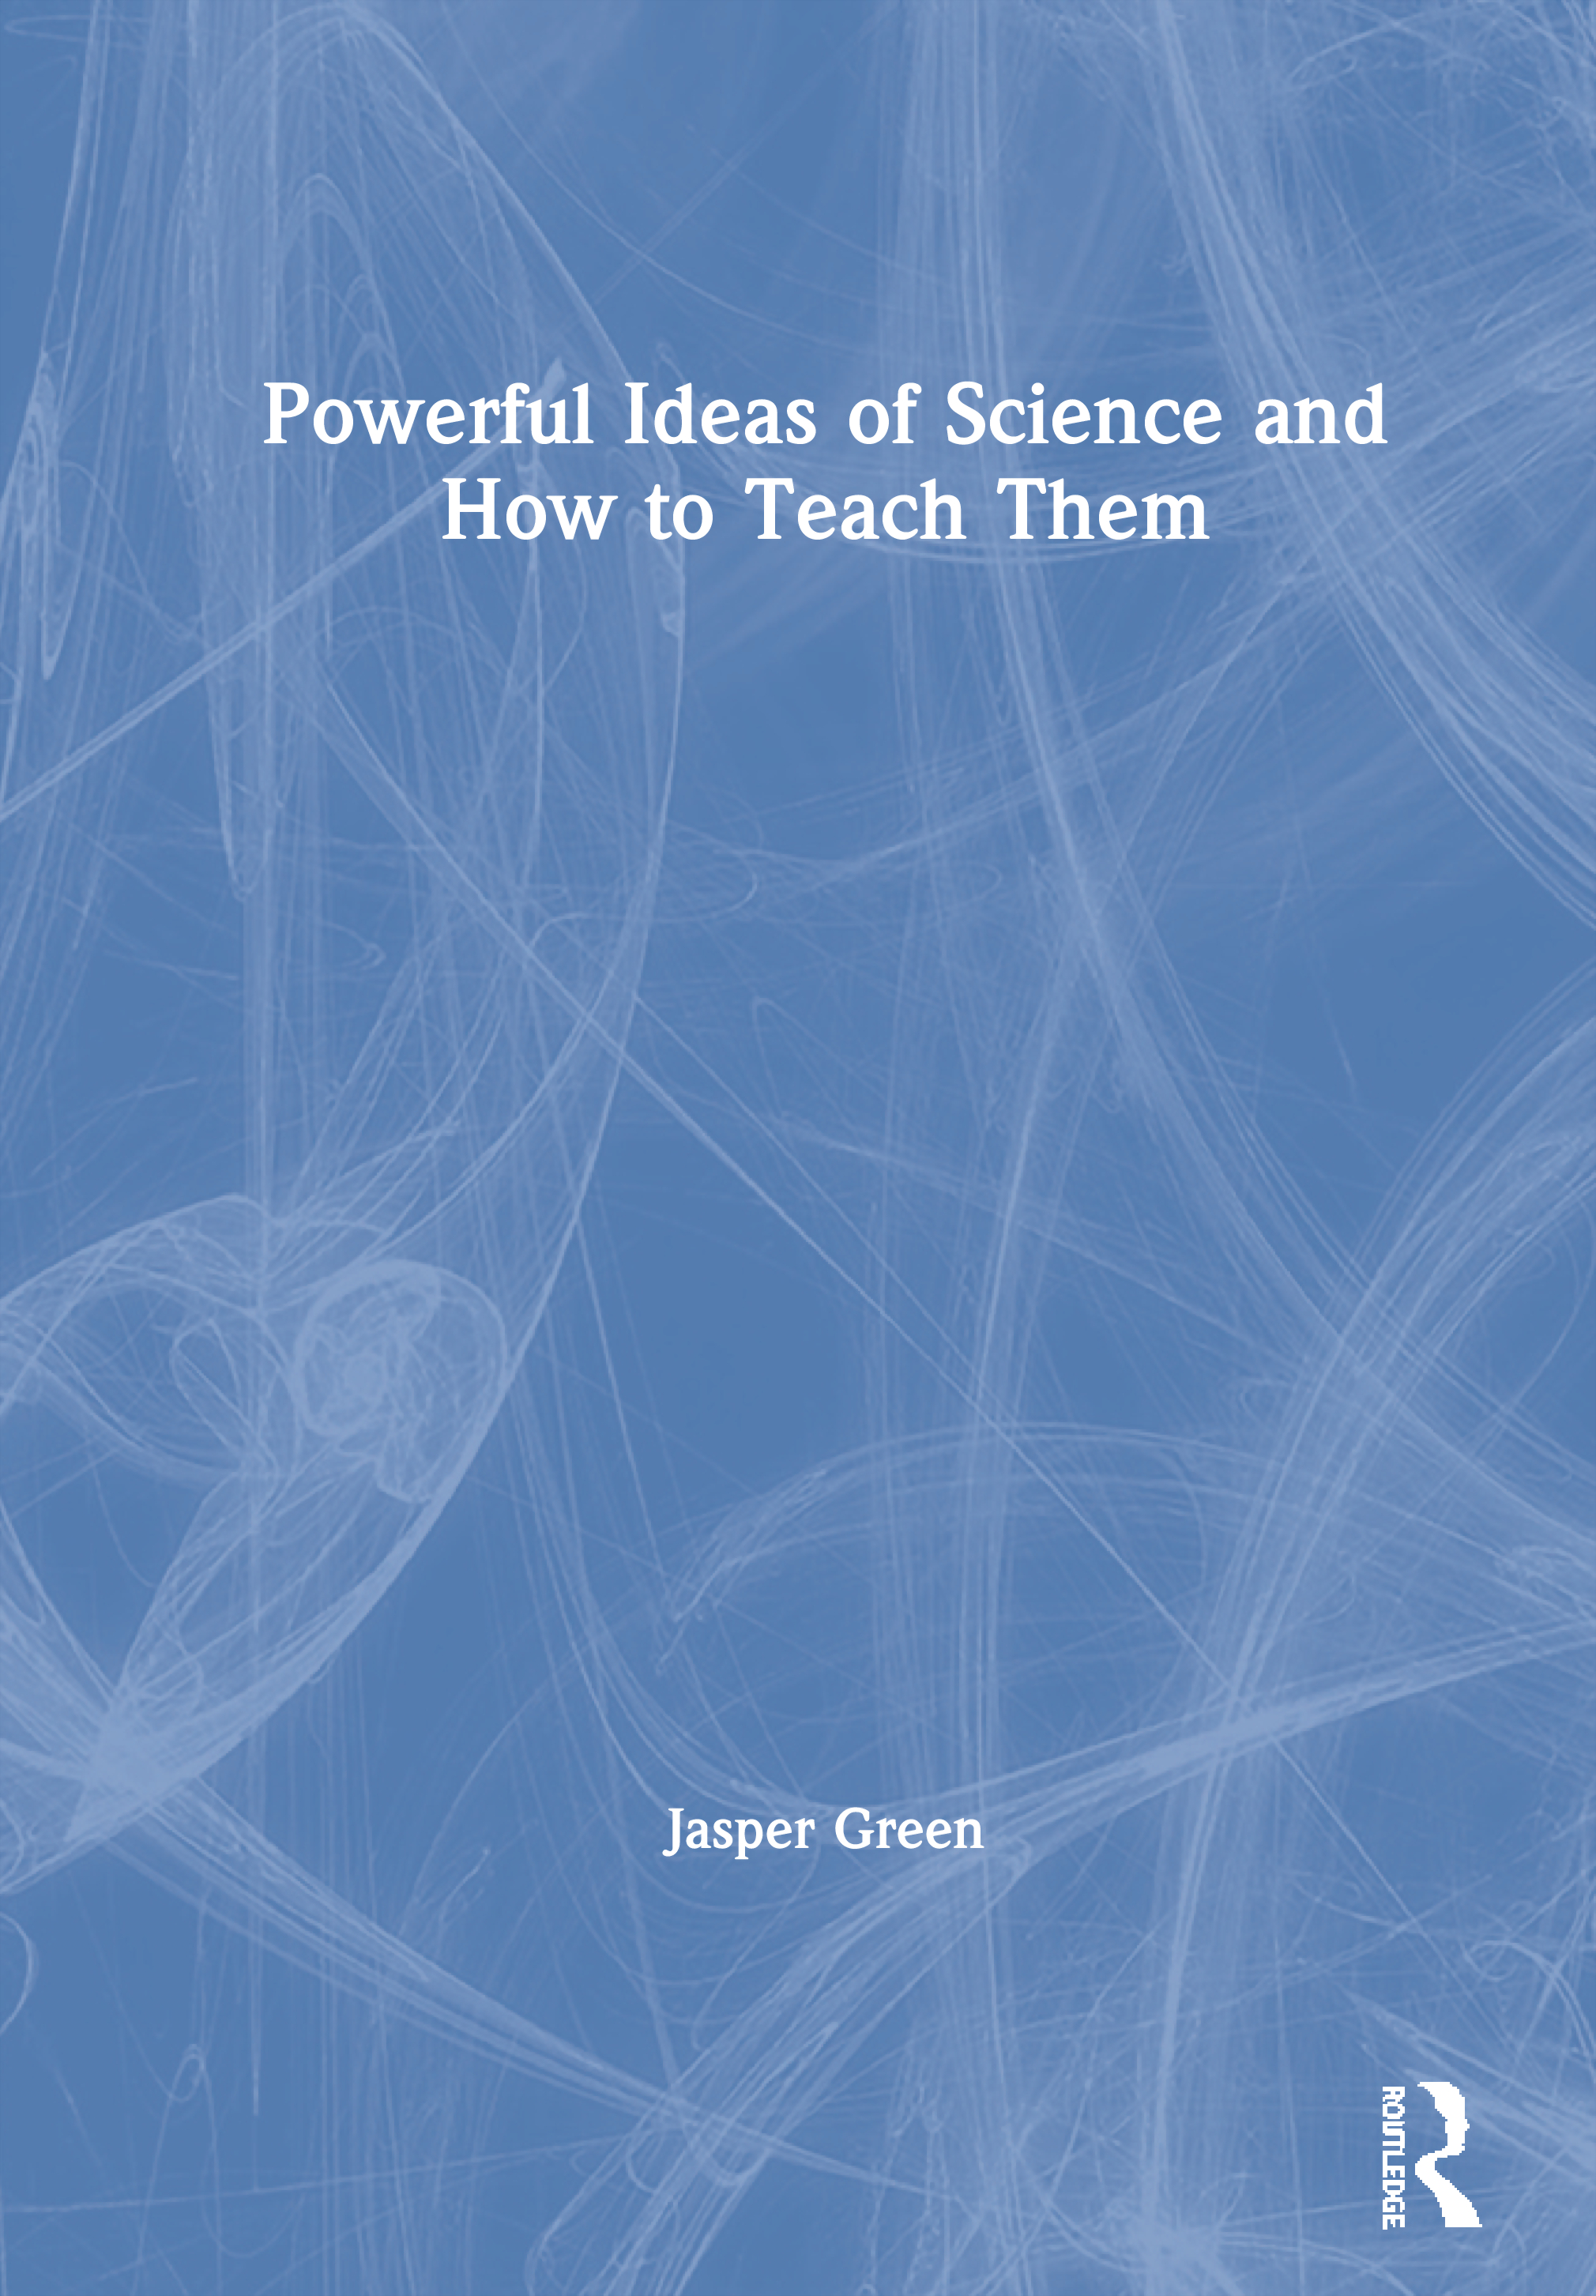 Powerful Ideas of Science and How to Teach Them book cover